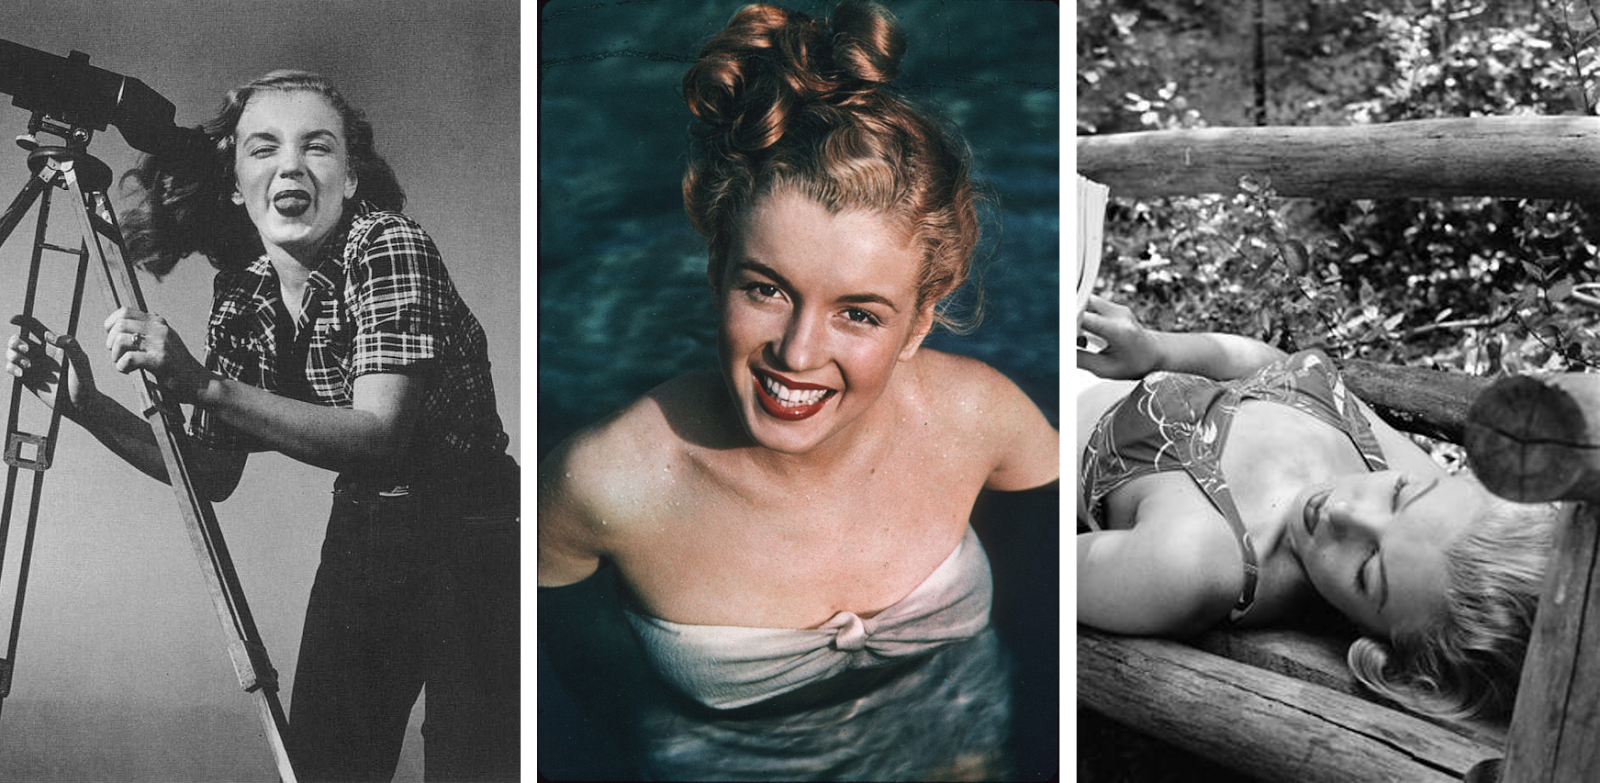 Pictures of a young Marilyn Monroe